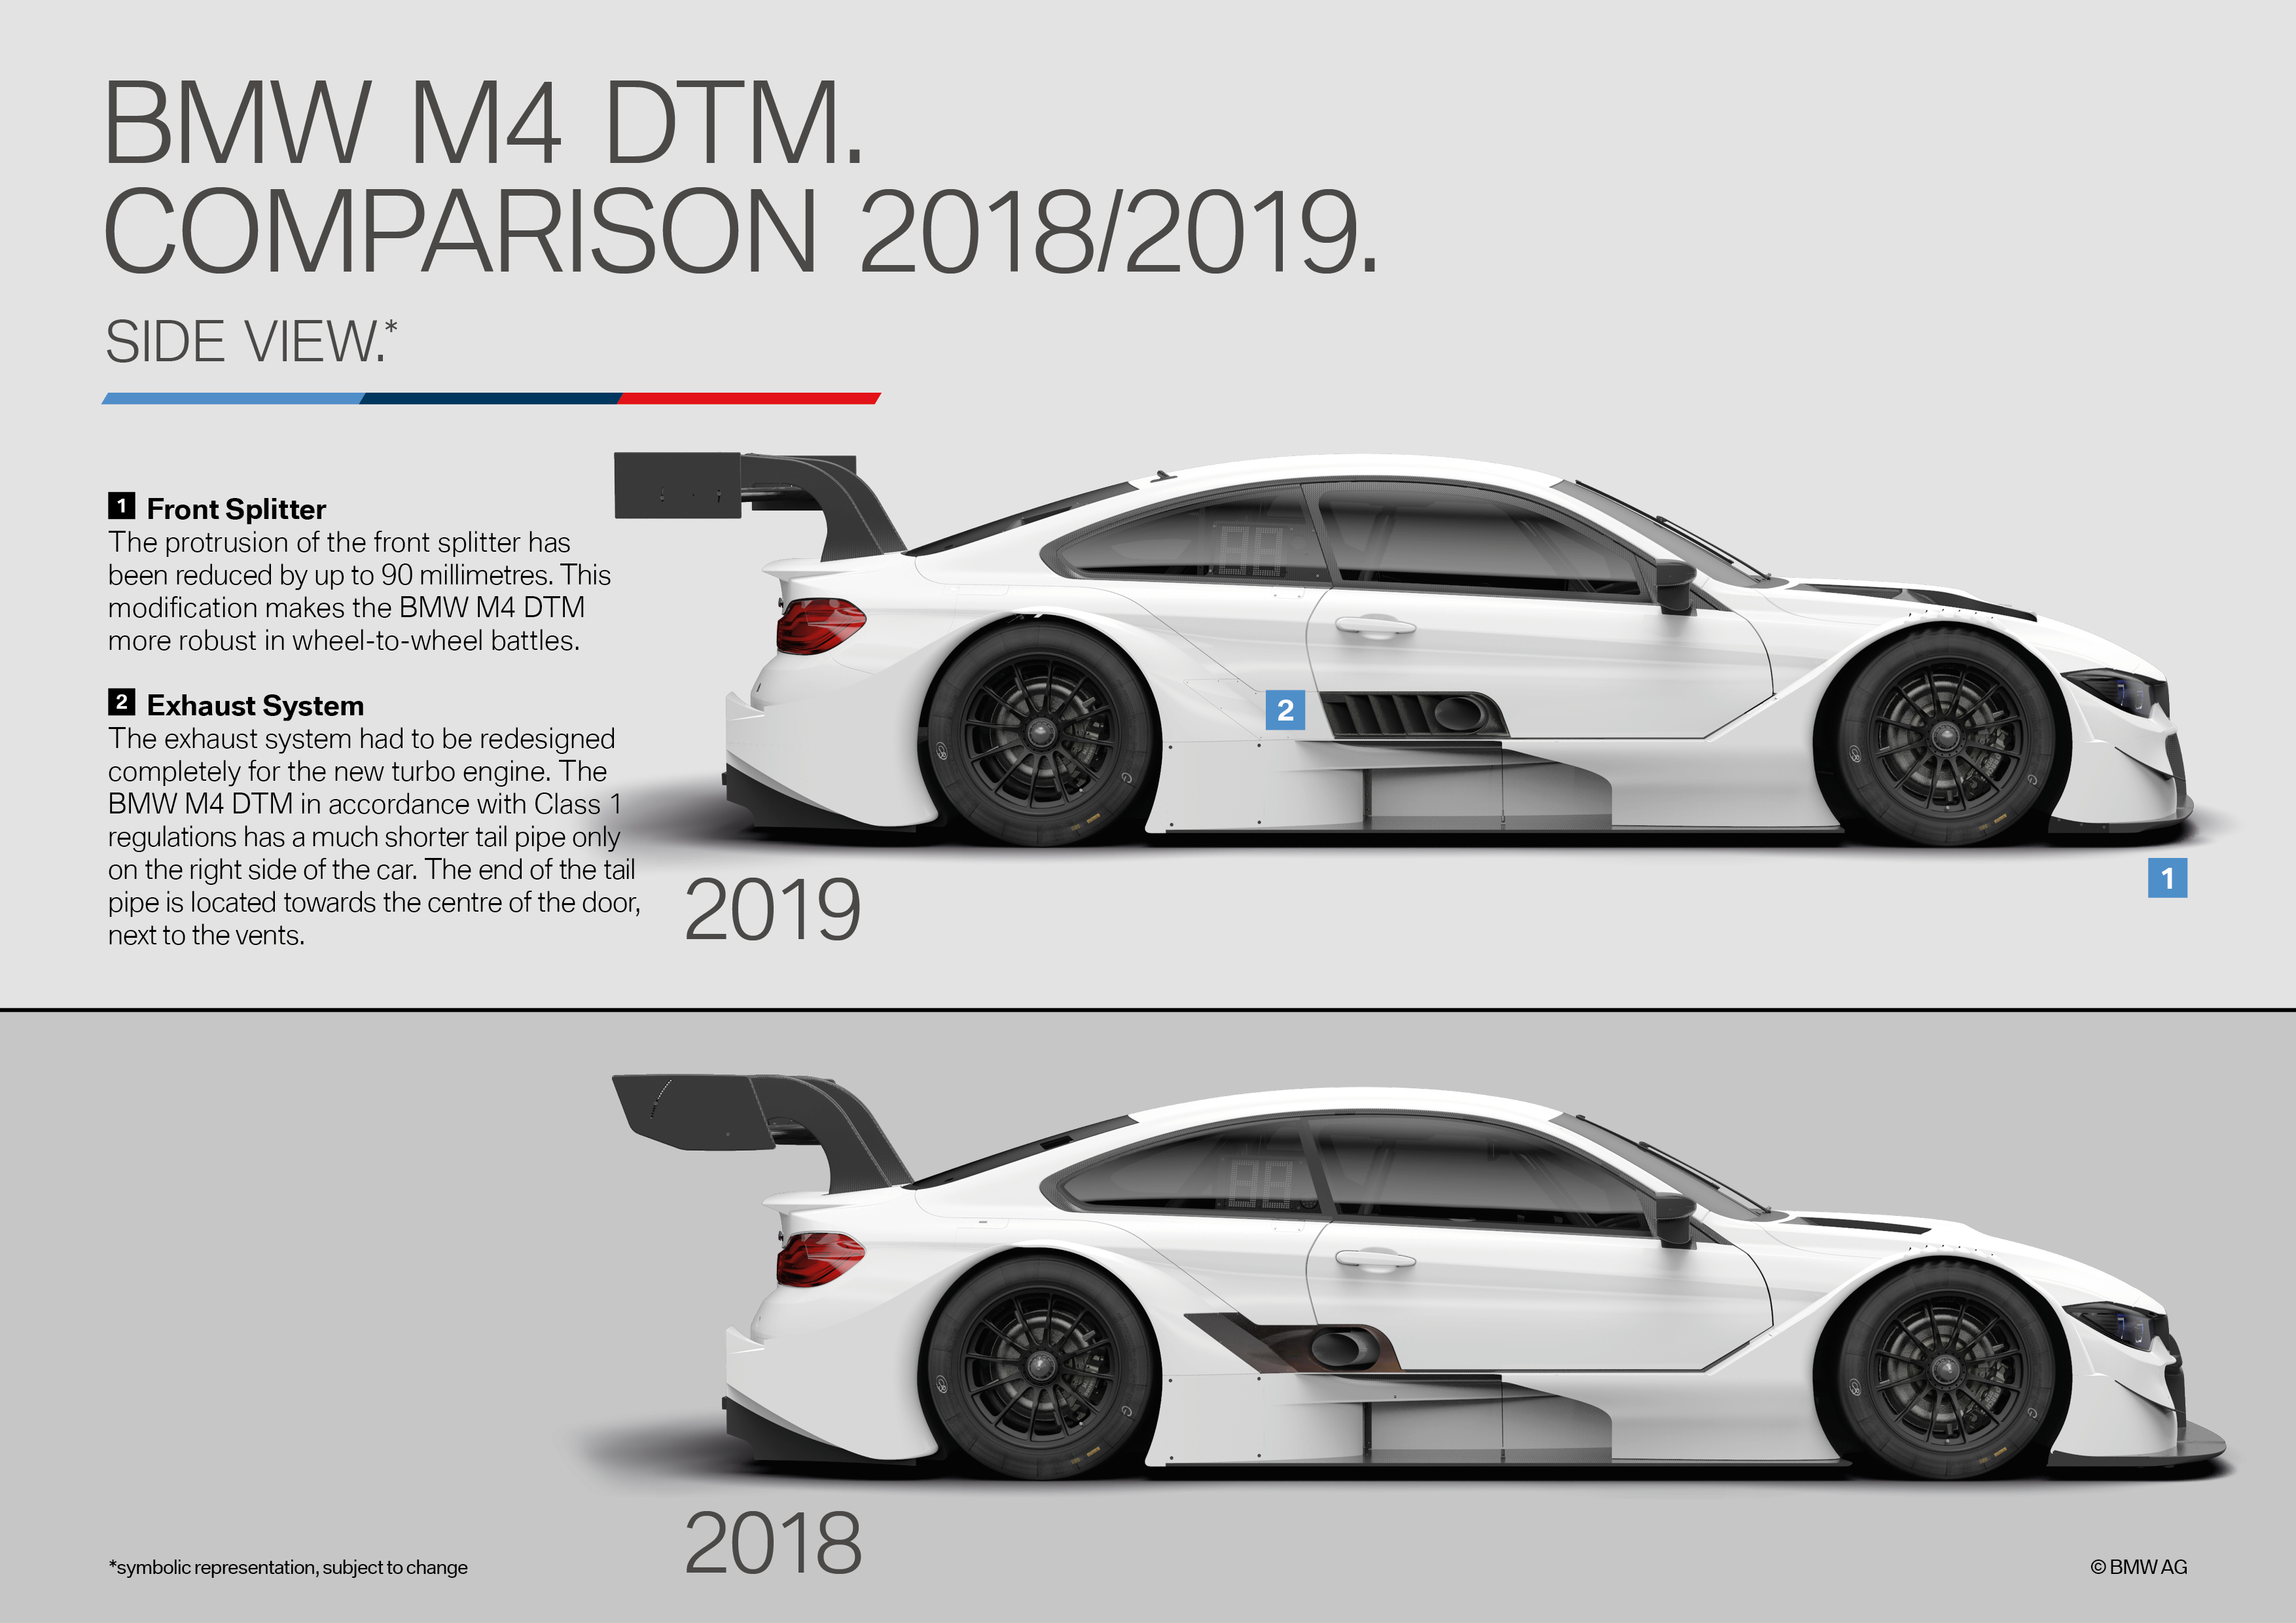 A Detailed Look At The New Bmw M4 Dtm For The Most Powerful Dtm Ever